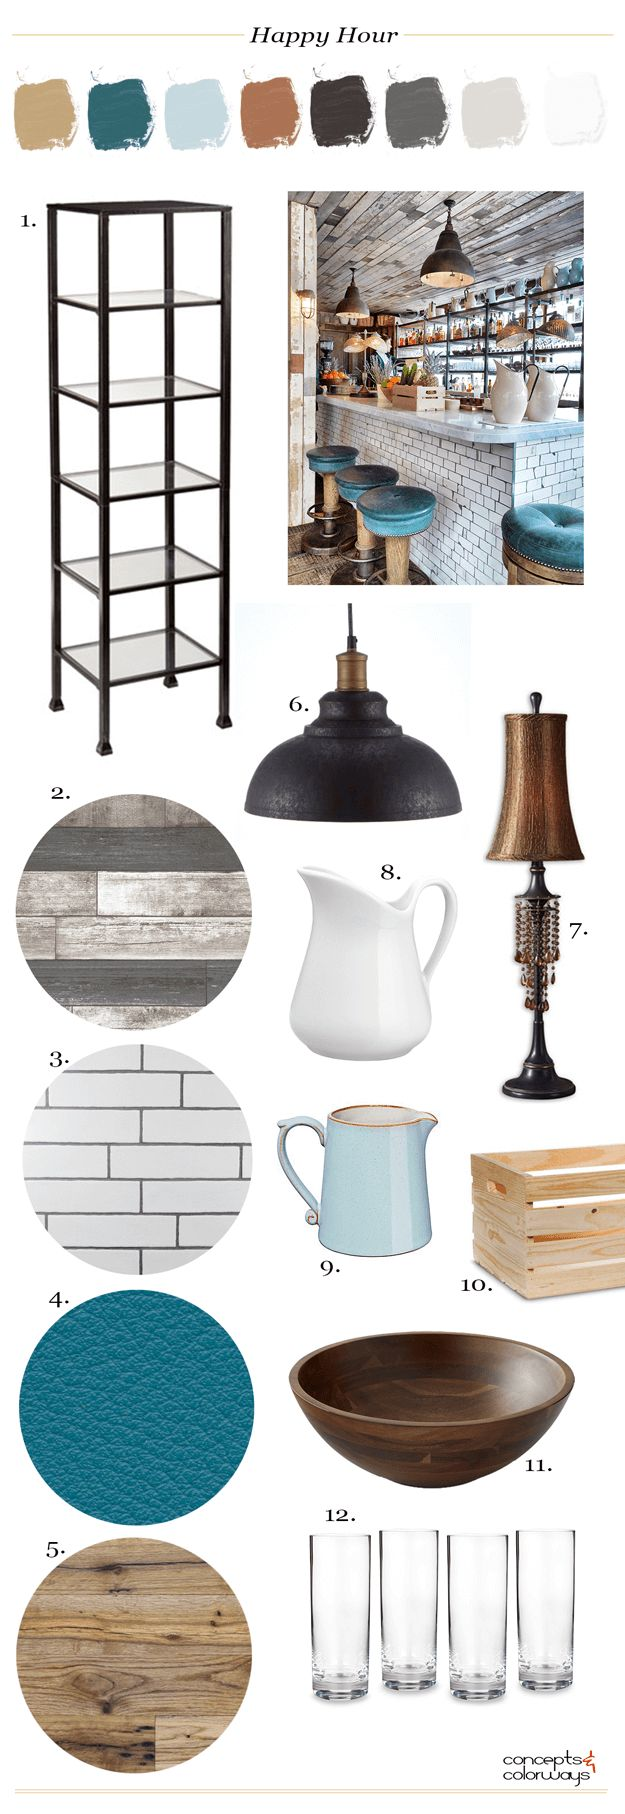 industrial style bar interior, get the look, interiors mood board, teal leather, mission oak, tall hurricane glasses, wood bowl, wood crate, robin's egg blue pitcher, vintage milk pitcher, industrial style black pendant light, copper lamp, gray weathered wood, reclaimed wood, white subway tile, black metal shelves, industrial style interior, interior styling, interior design